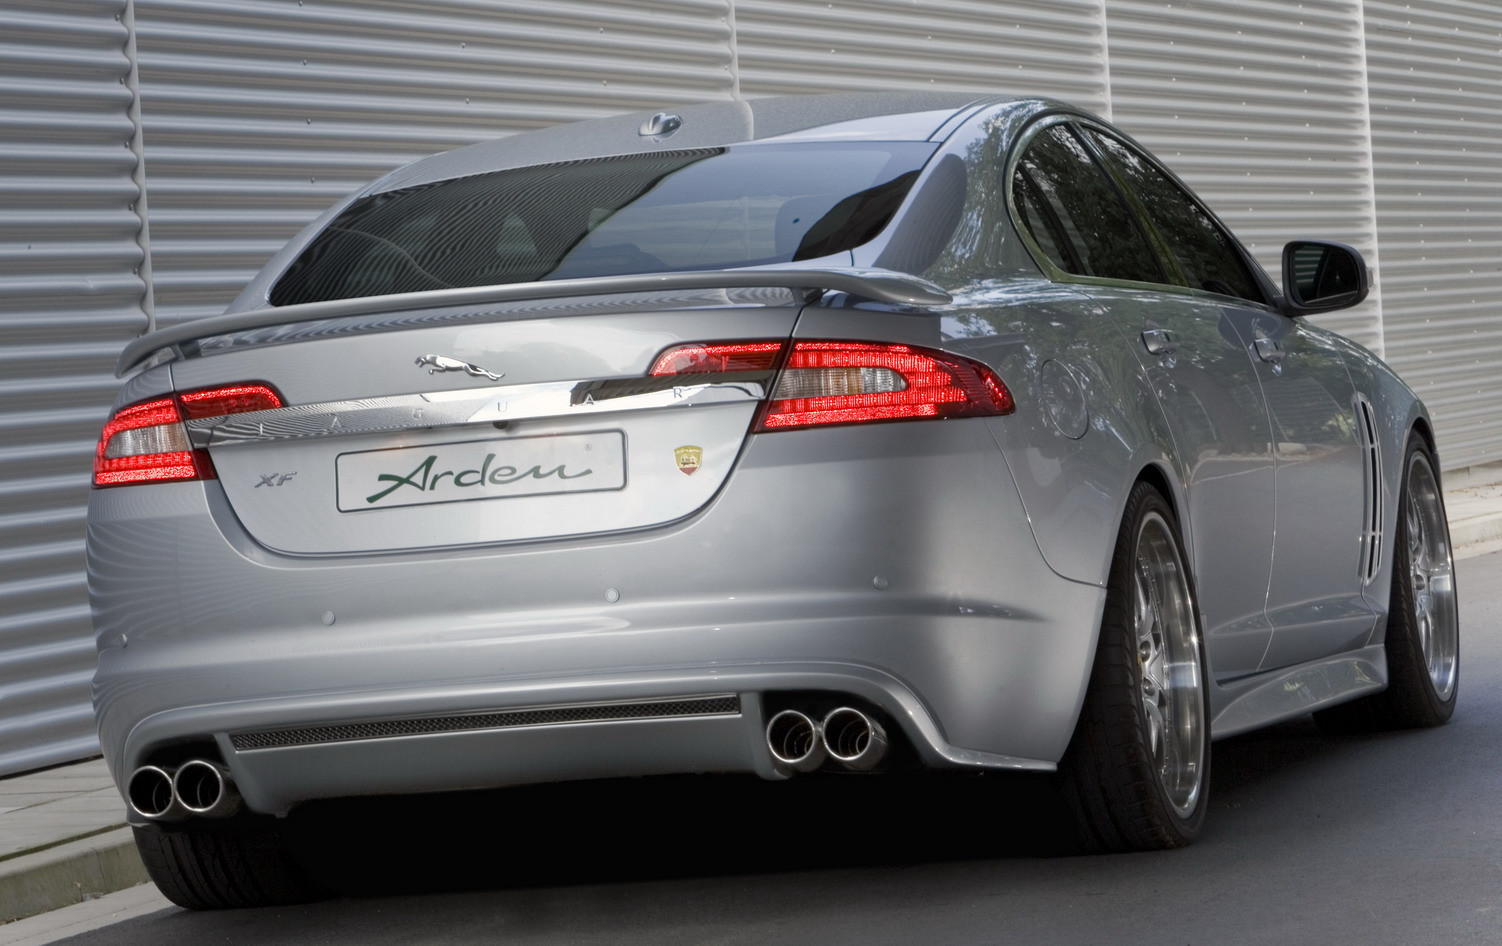 Jaguar XF by Arden Wallpaper For Phone